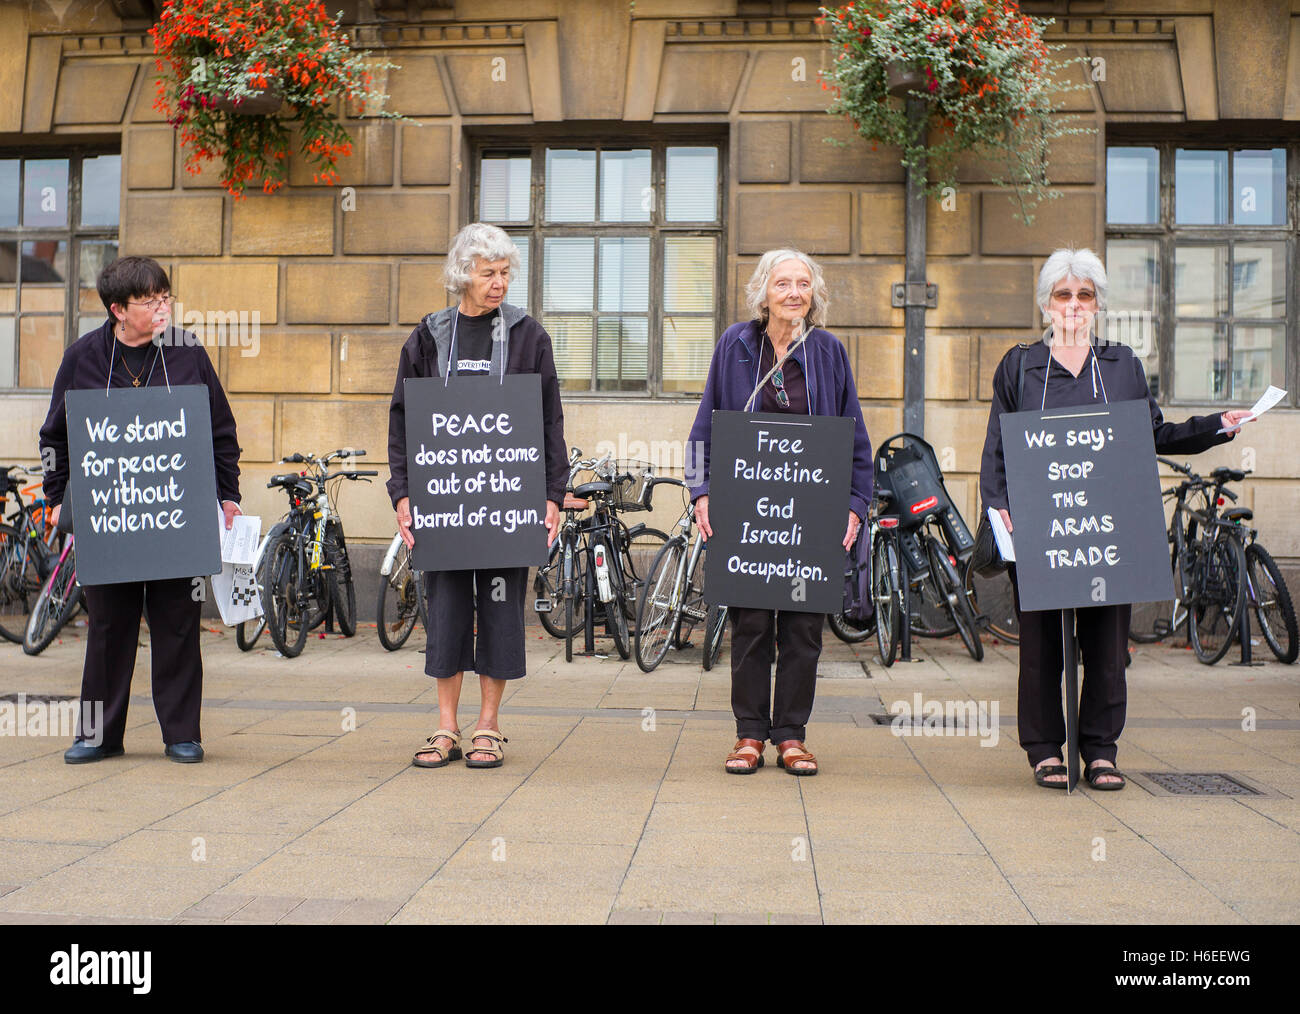 four older ladies making a peace protest in Cambridge Market square  'we stand for peace without violence' - Stock Image